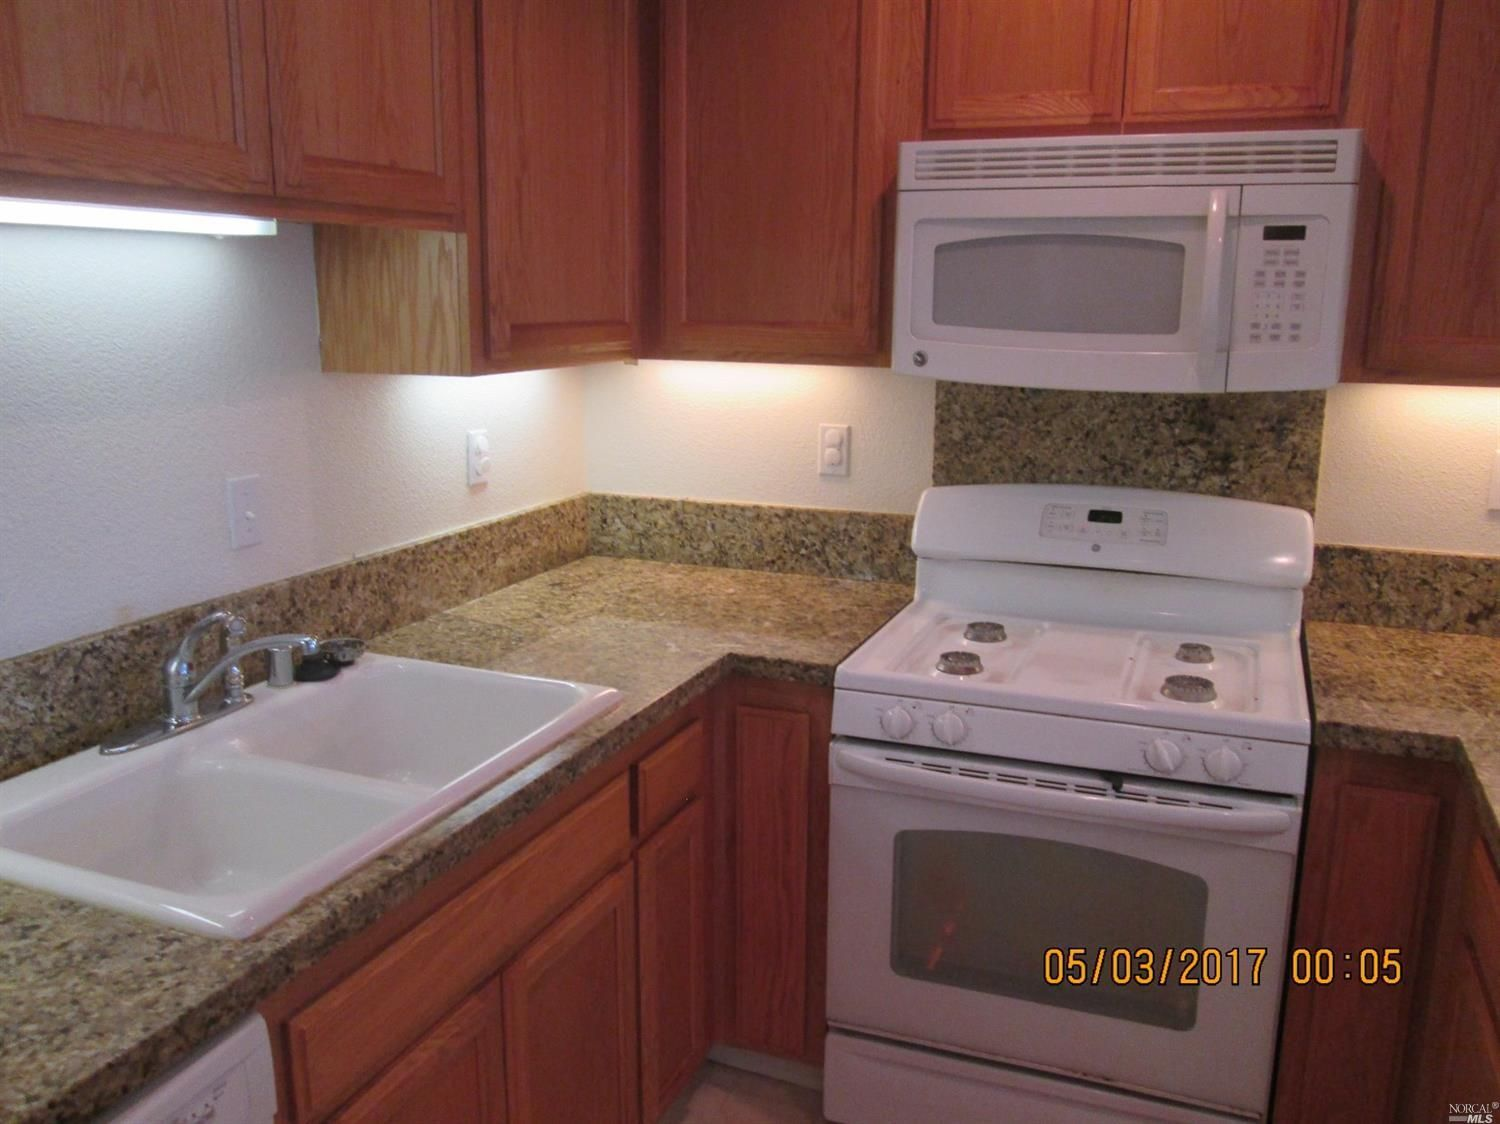 $364500 - 300 Locust Dr 25 Vallejo CA 94591 Rare opportunity to acquire this well kept 1348 sqft. Unit in East Vallejo built in 2006. Unit features 3-Bedrooms 2.5 Bathrooms single car garage and assigned parking stall and fantastic views. Fresh Granite counter tops in kitchen large walk-in closet in master bedroom skylights 2-balconies with views gas fireplace in living room 2 miles from freeway 15 miles to Napa and 30 miles from San Francisco http://bit.ly/2pa2dKM